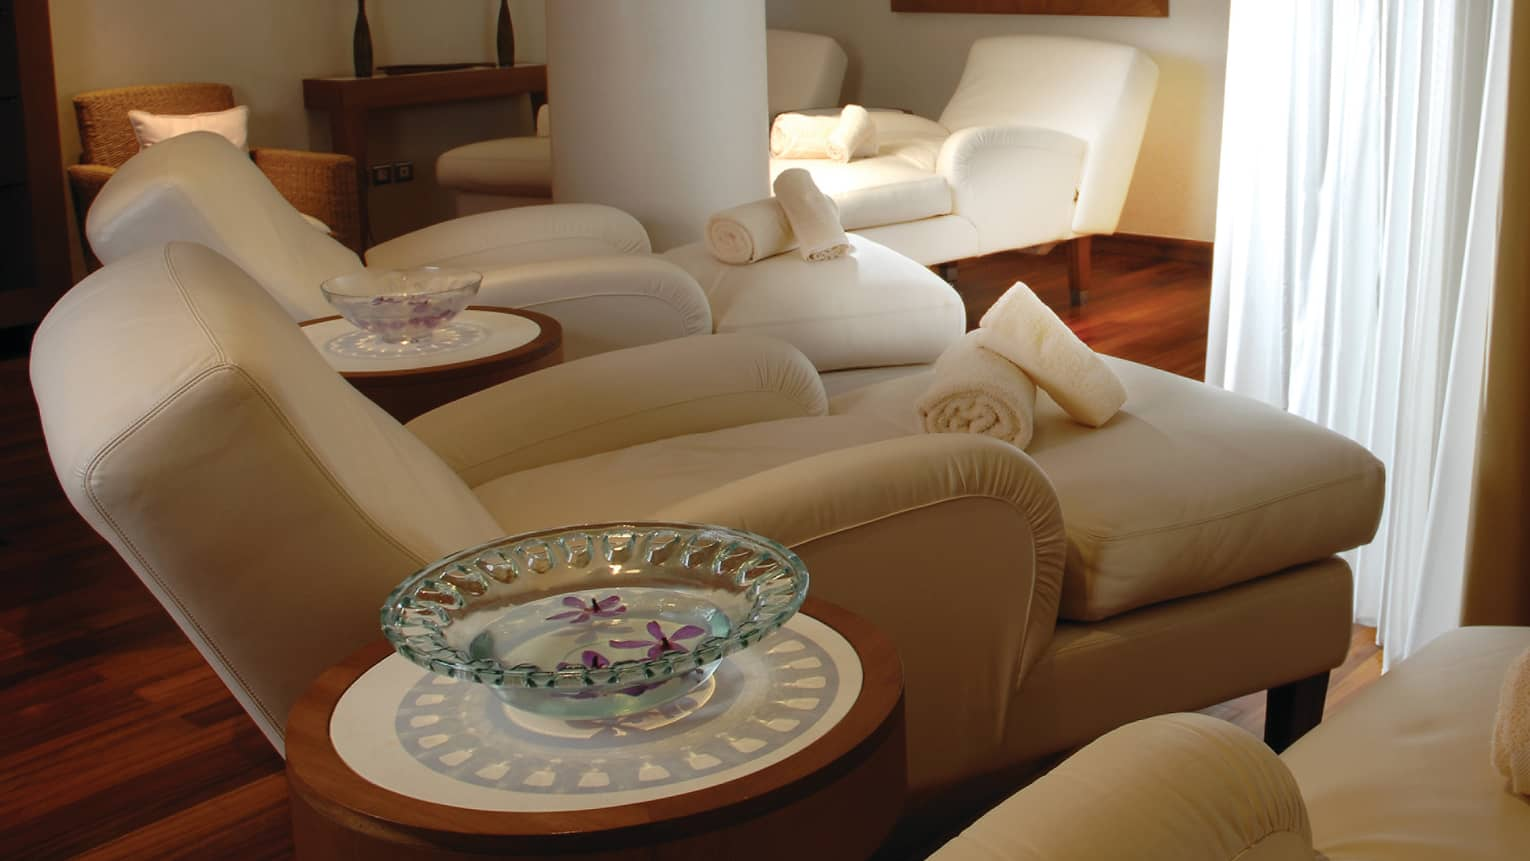 Three large plush chaise lounge sofas in dimly-lit spa room, rolled white towels